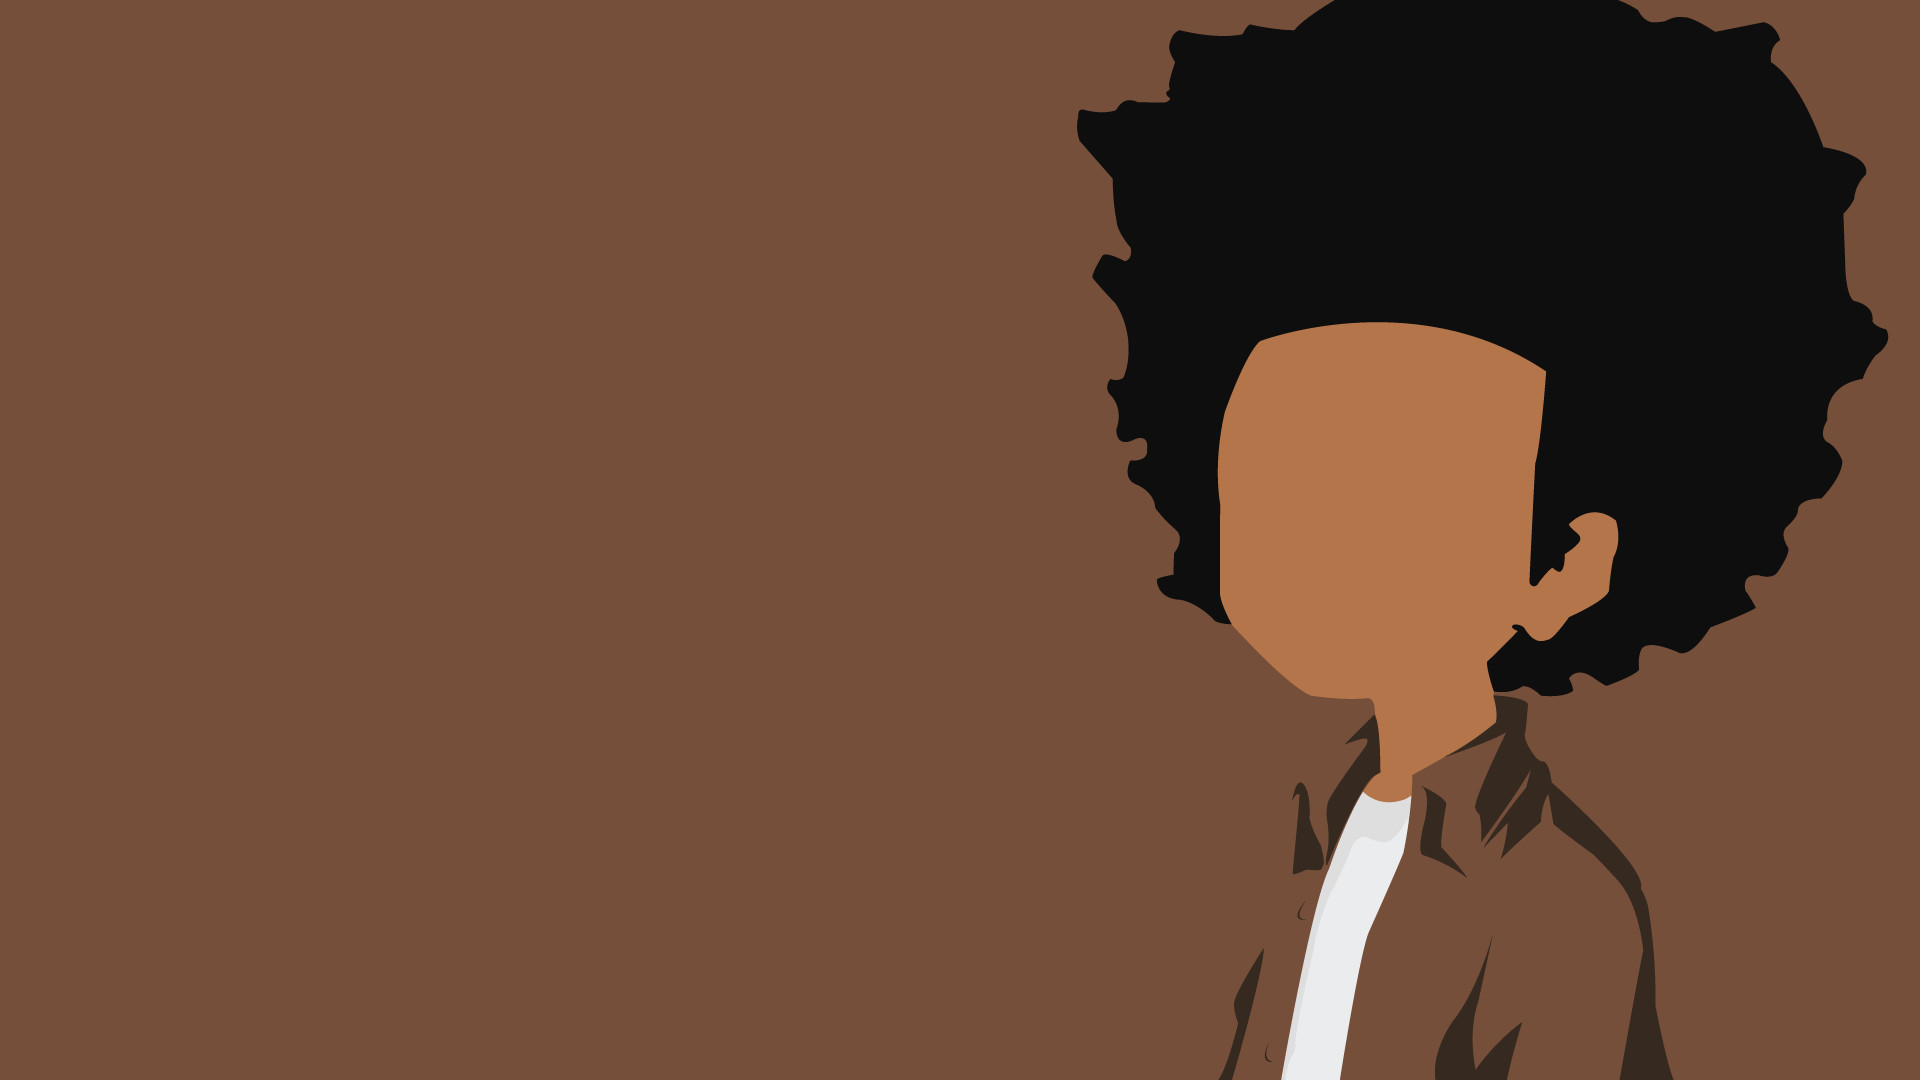 Only Hd Wallpapers Girl The Boondocks Iphone Wallpaper 183 ①